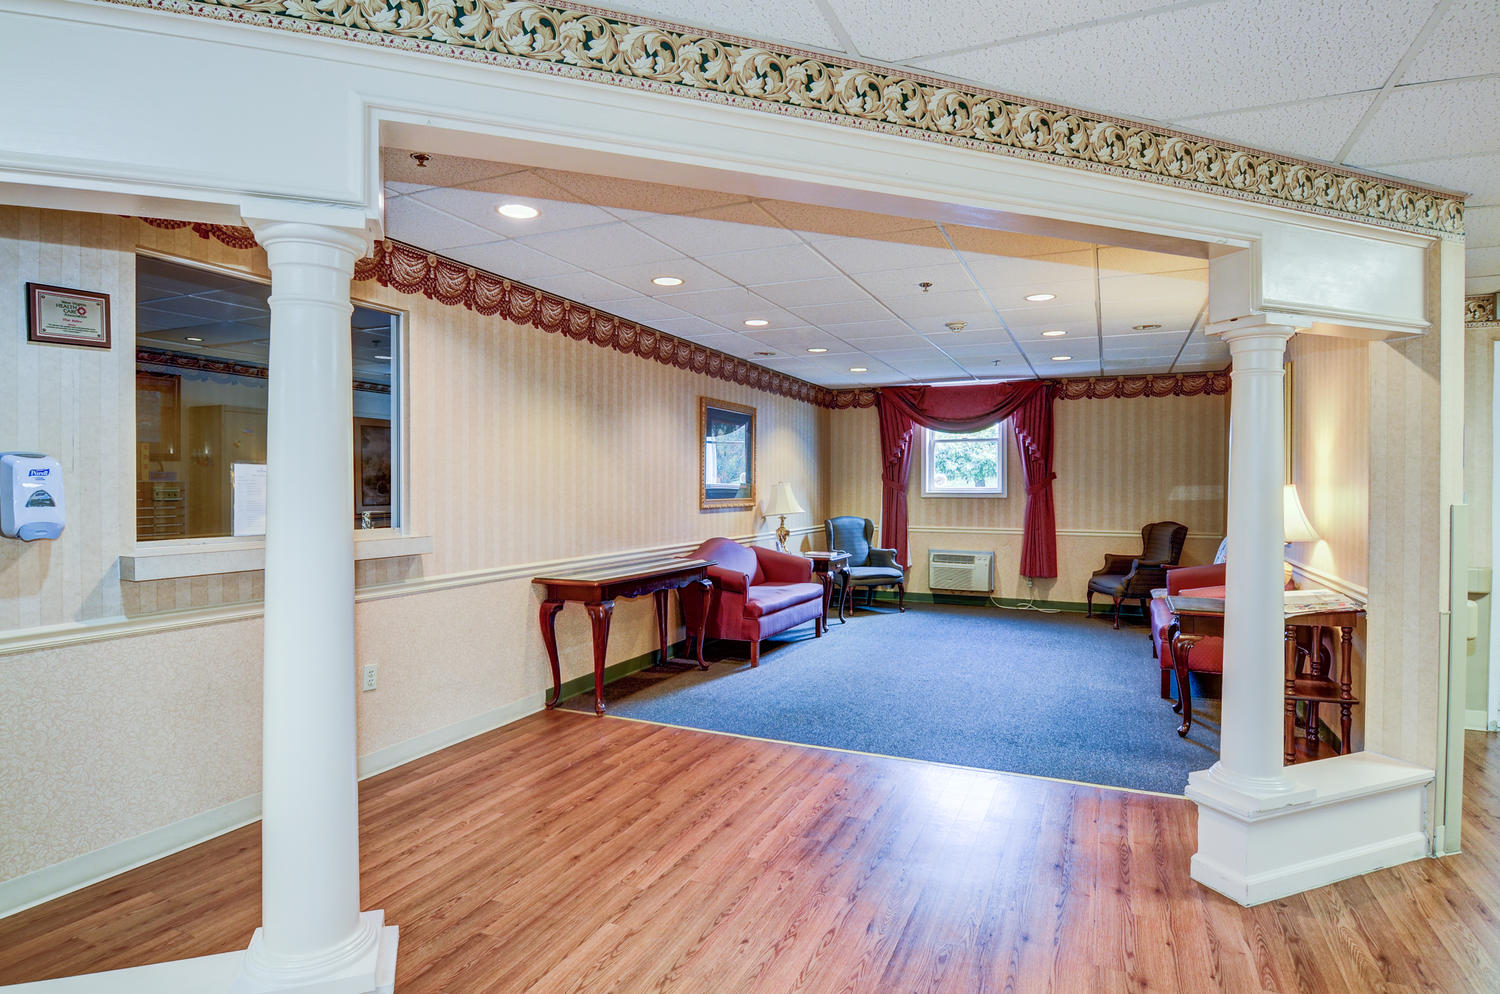 Stonerise Lewisburg lobby with columns and reception window